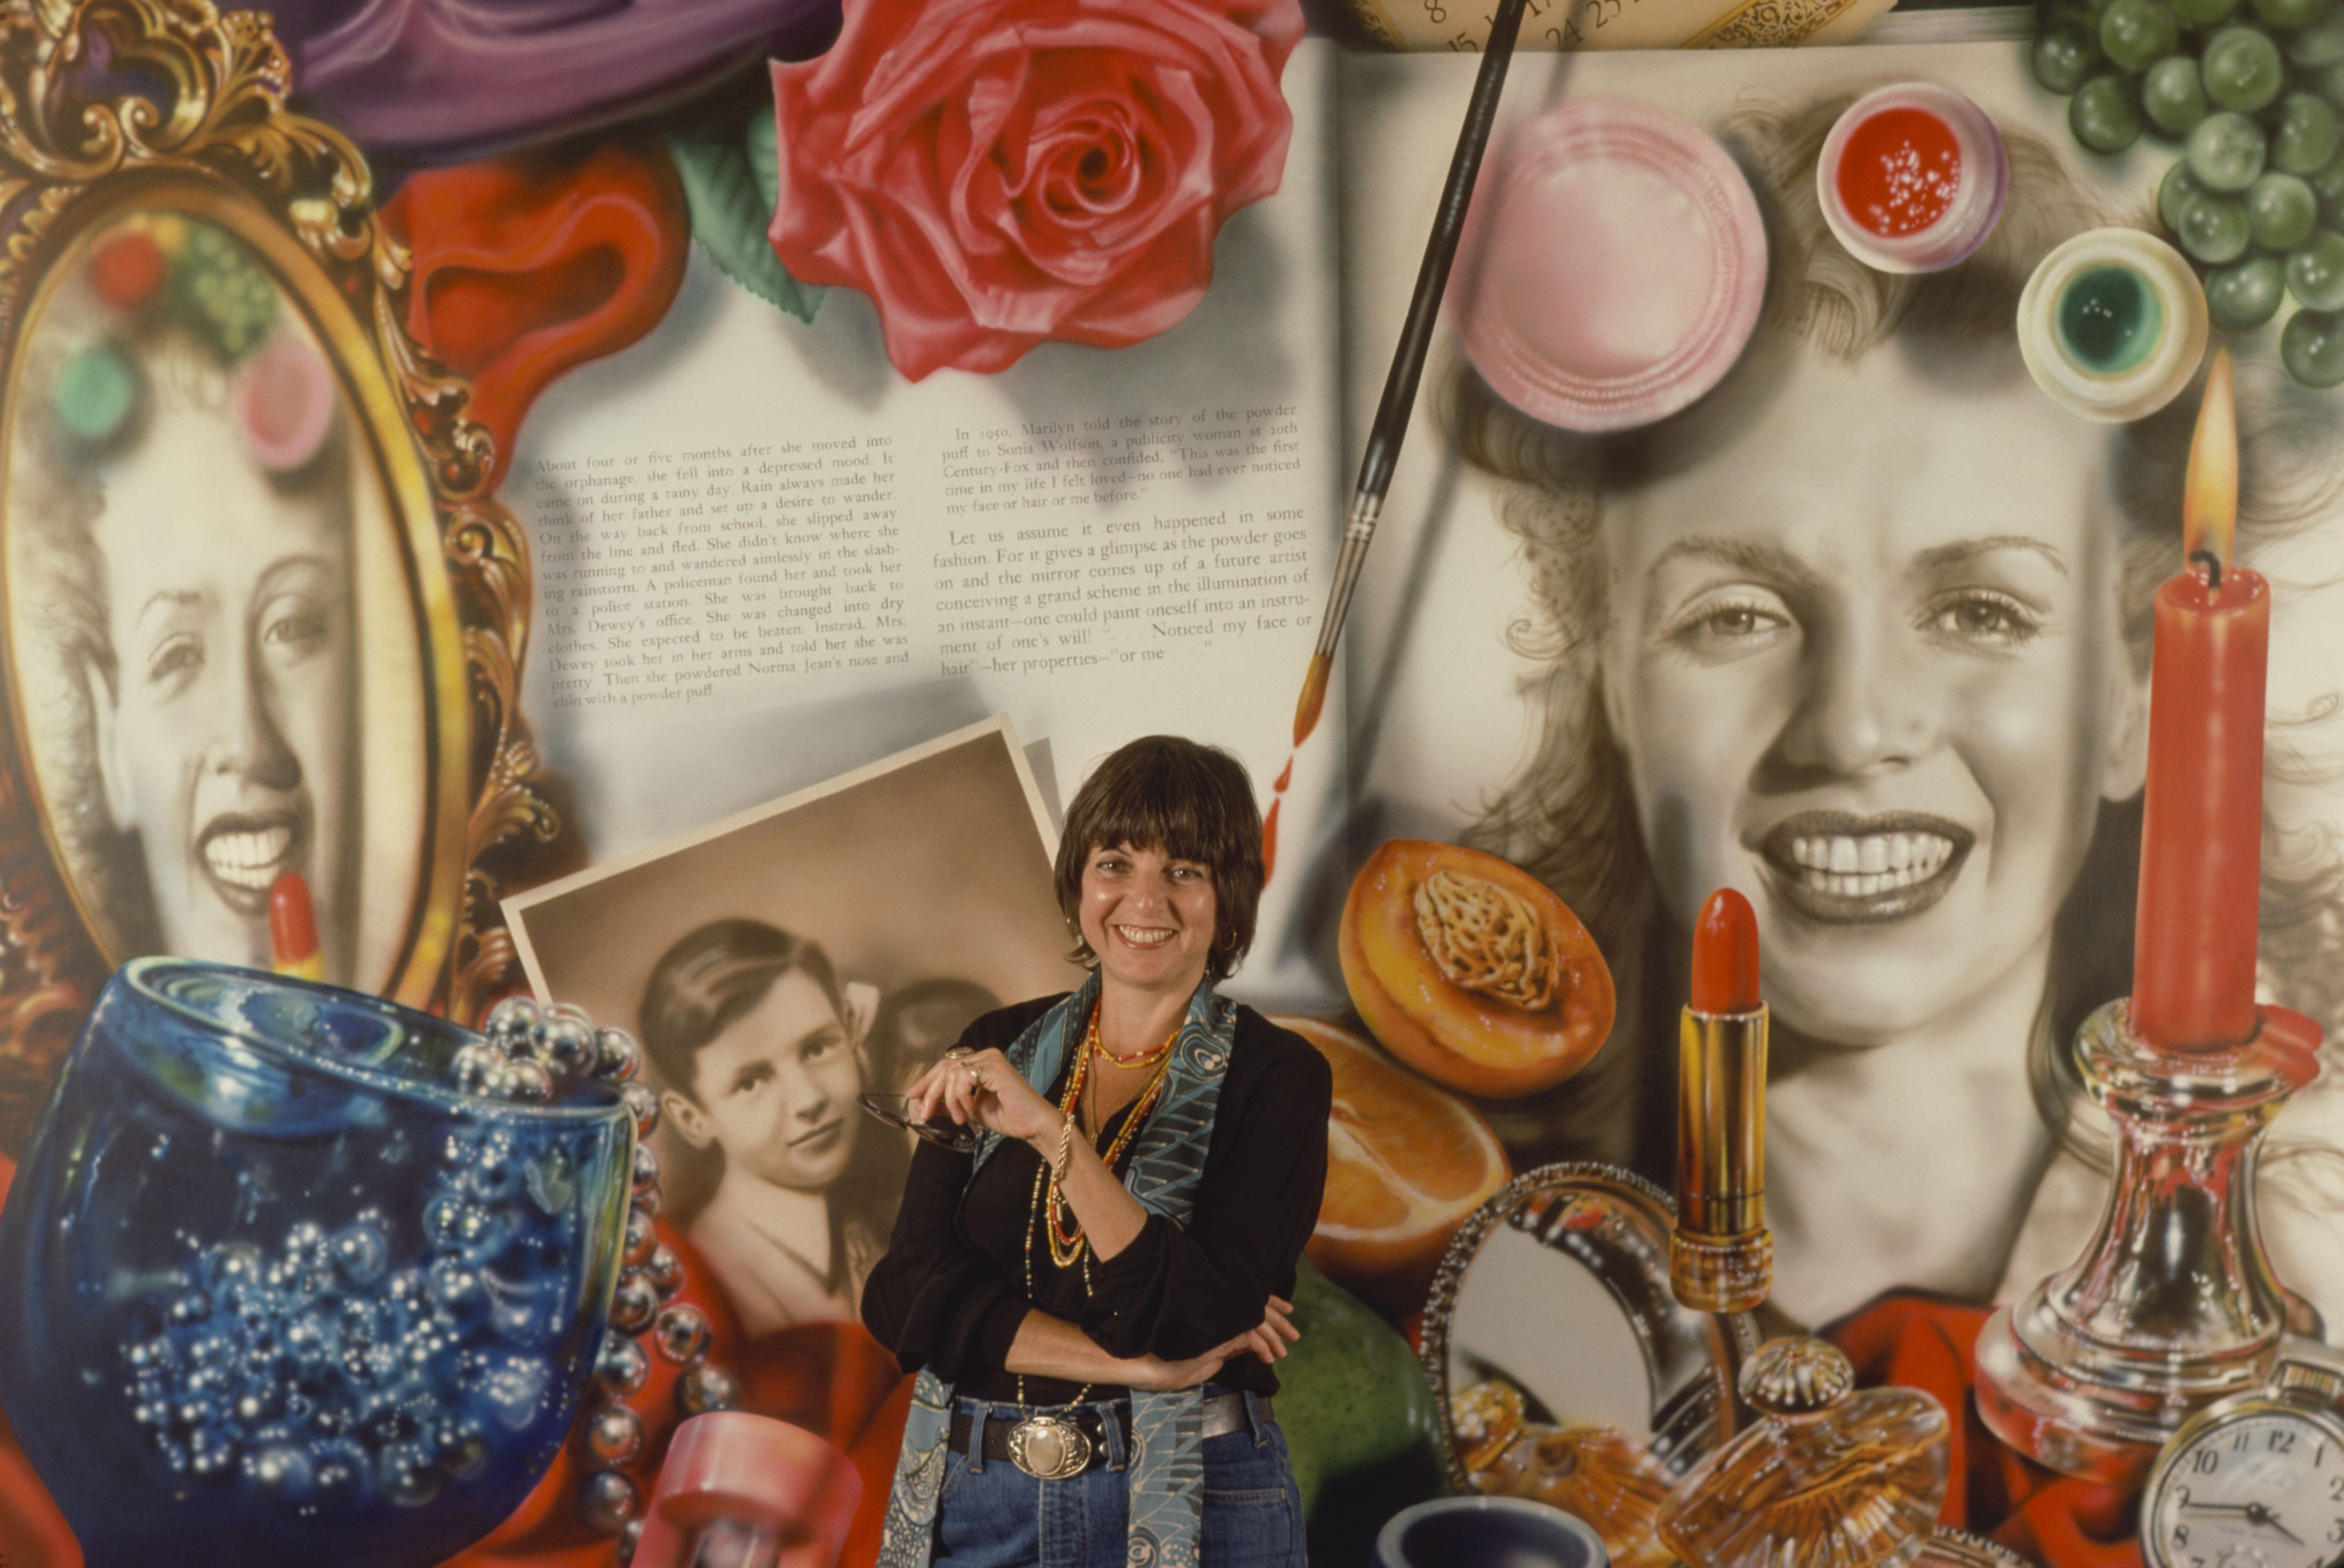 Realistic painting with old photos, lipstick, candle, rose, and portrait of artist Audrey Flack.